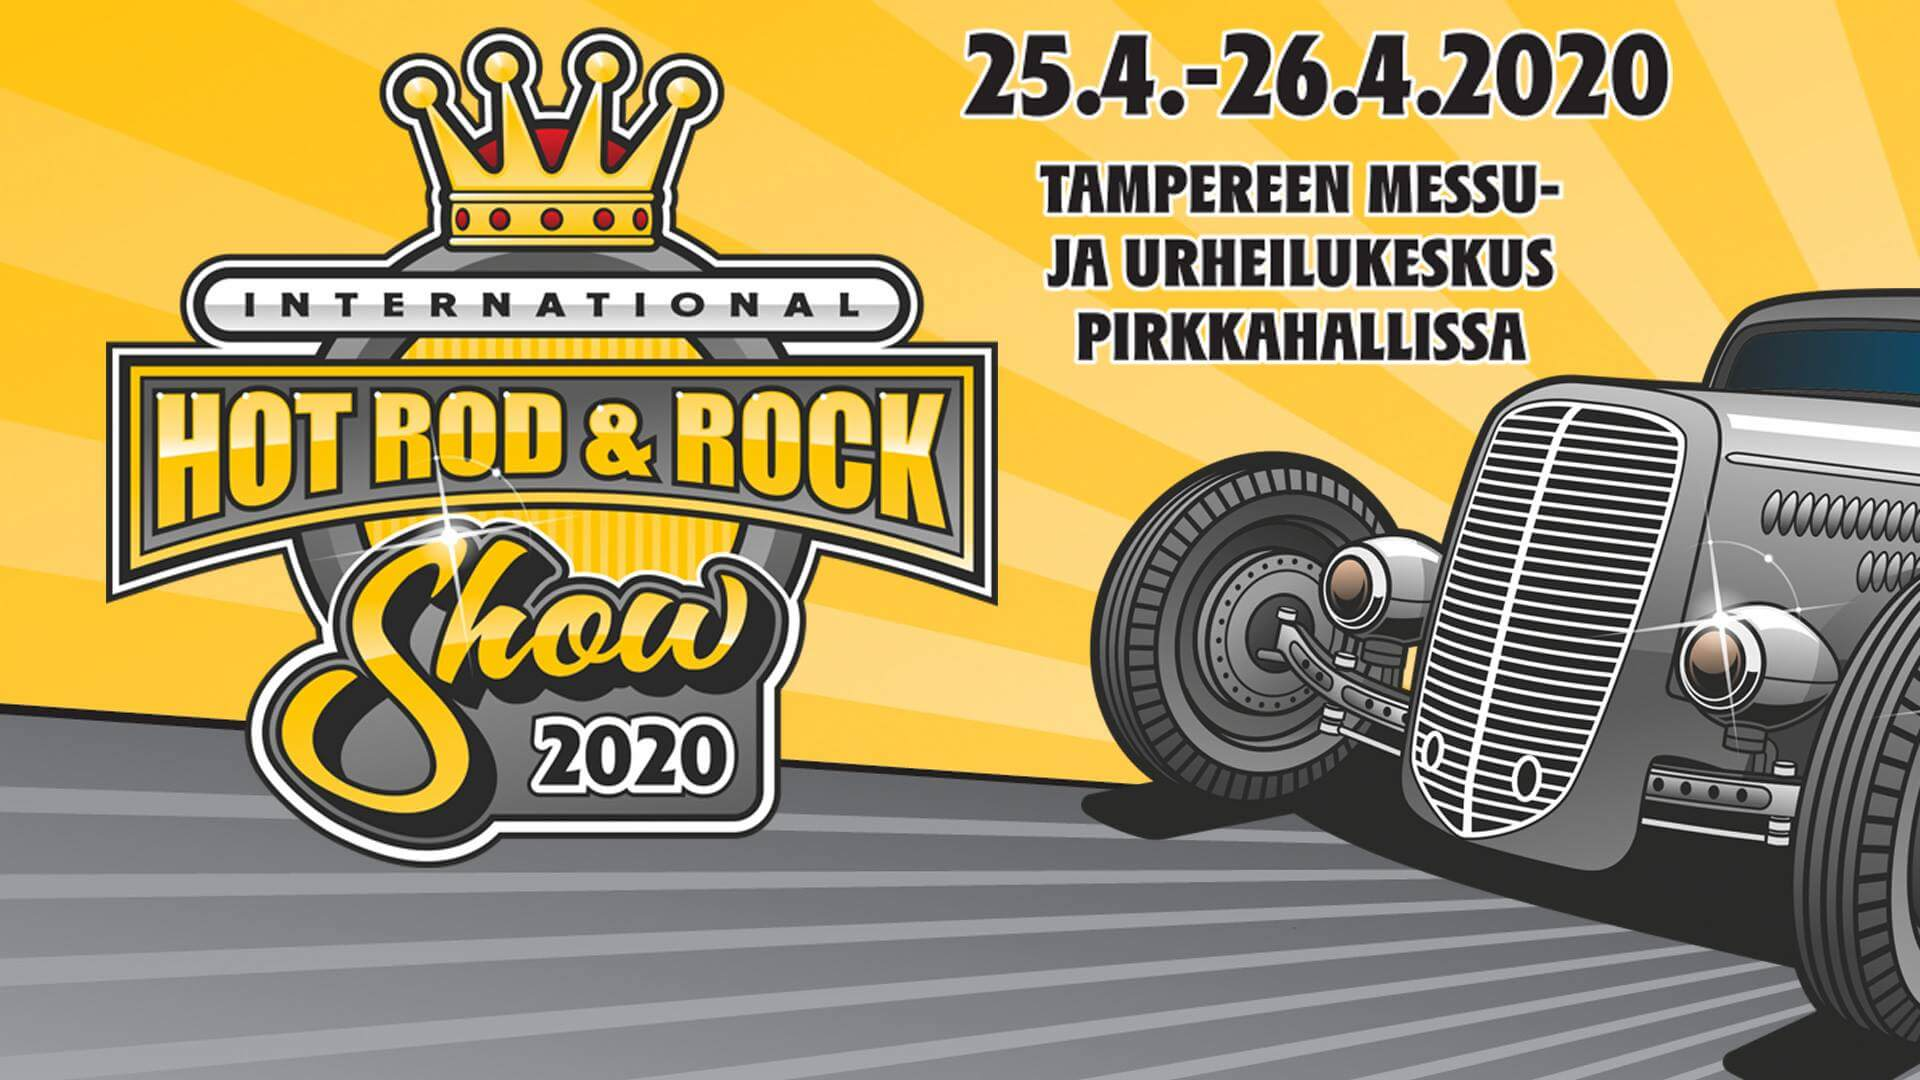 Hot Rod & Rock 2020 shown juliste.